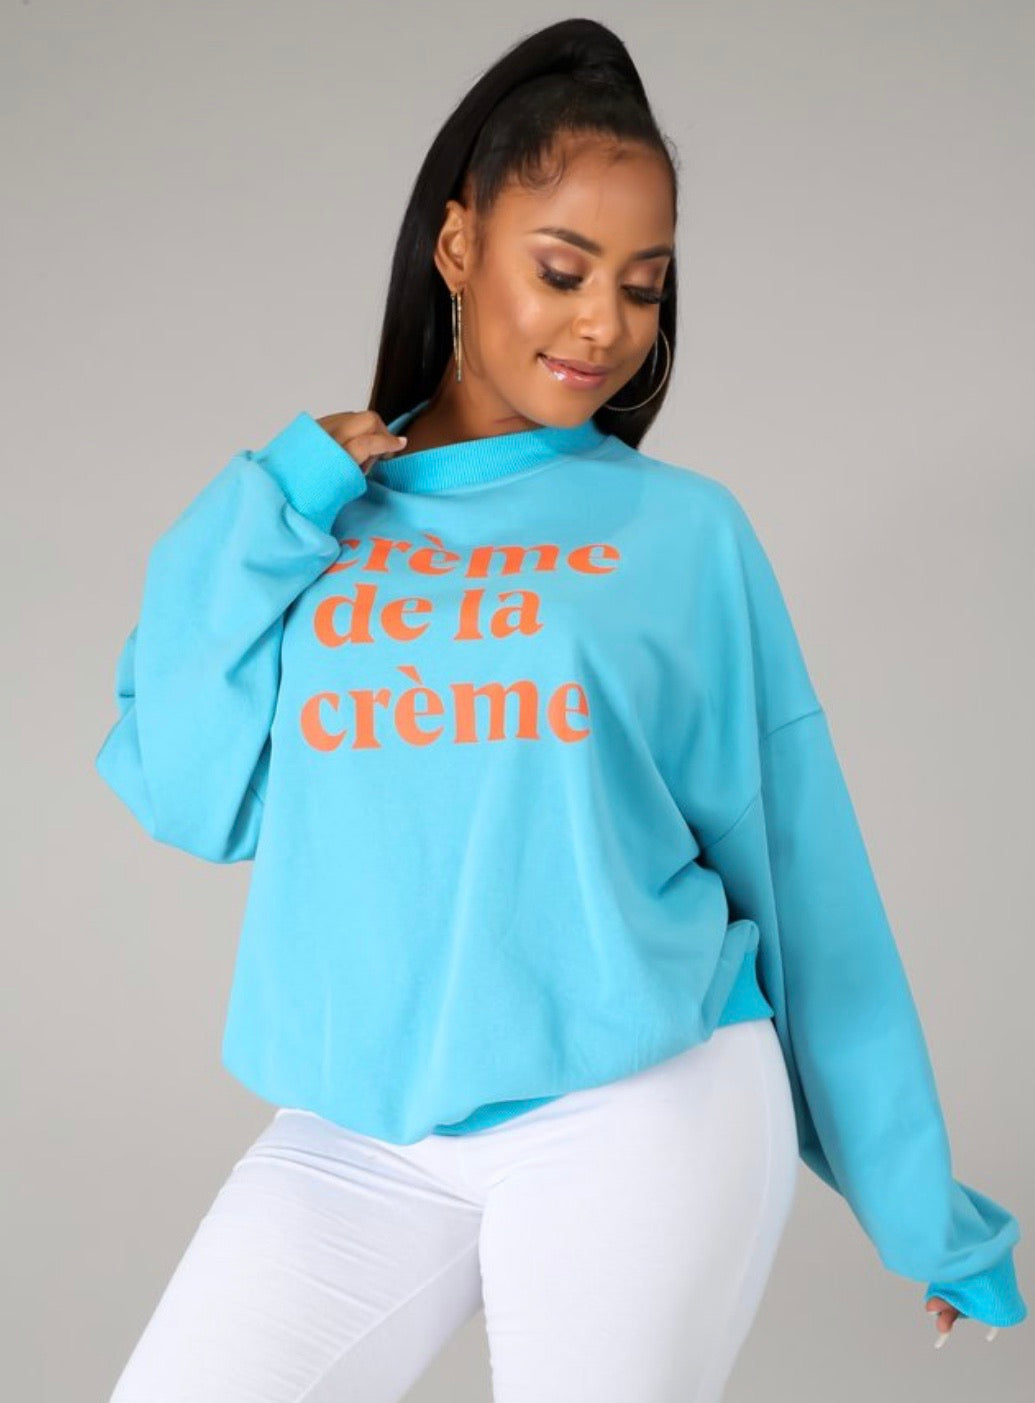 Creme de la creme (over sized sweater)